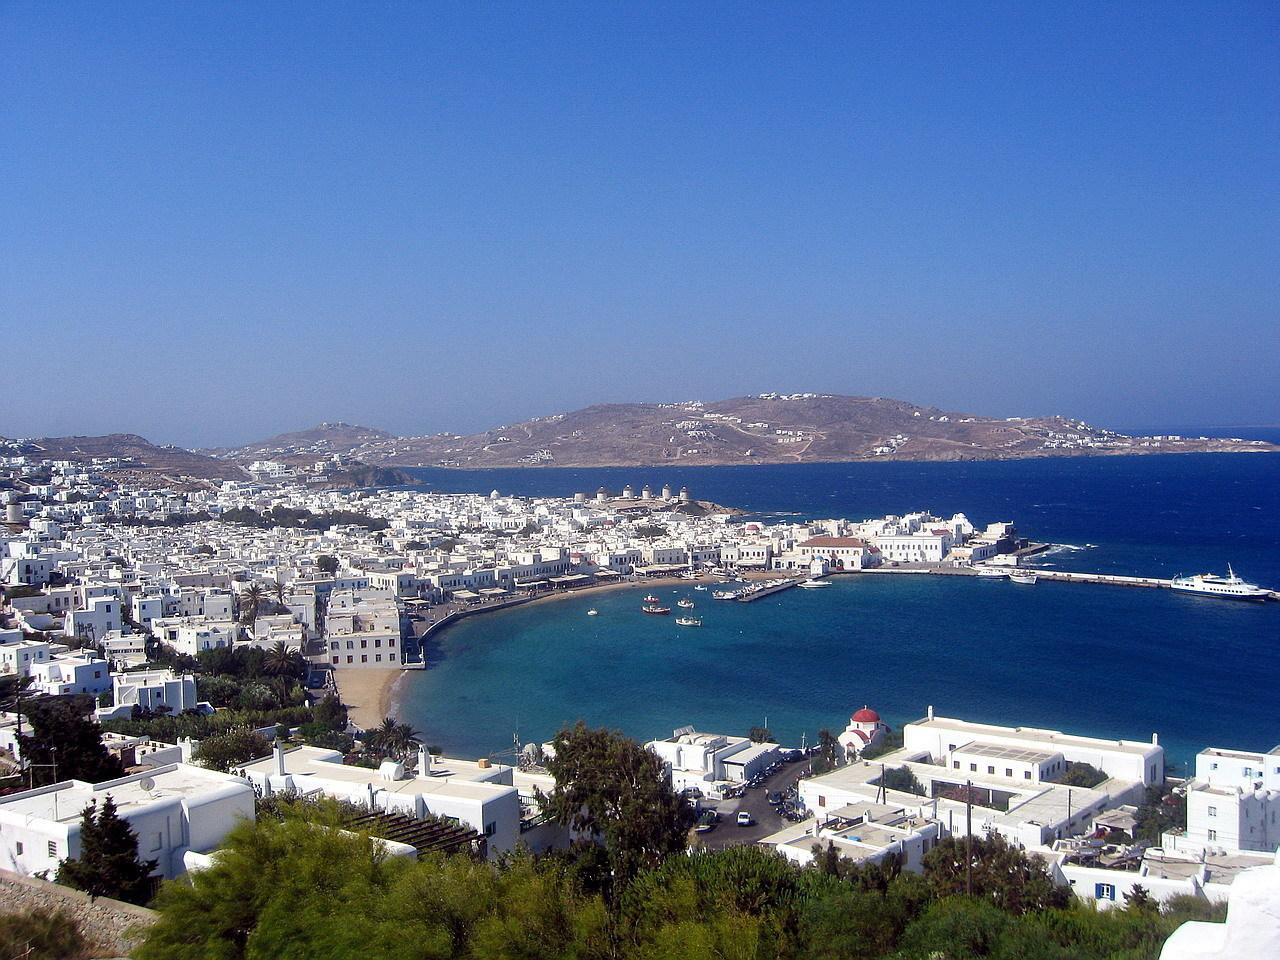 Mykonos-greek-islands-15723594-1280-960.jpg